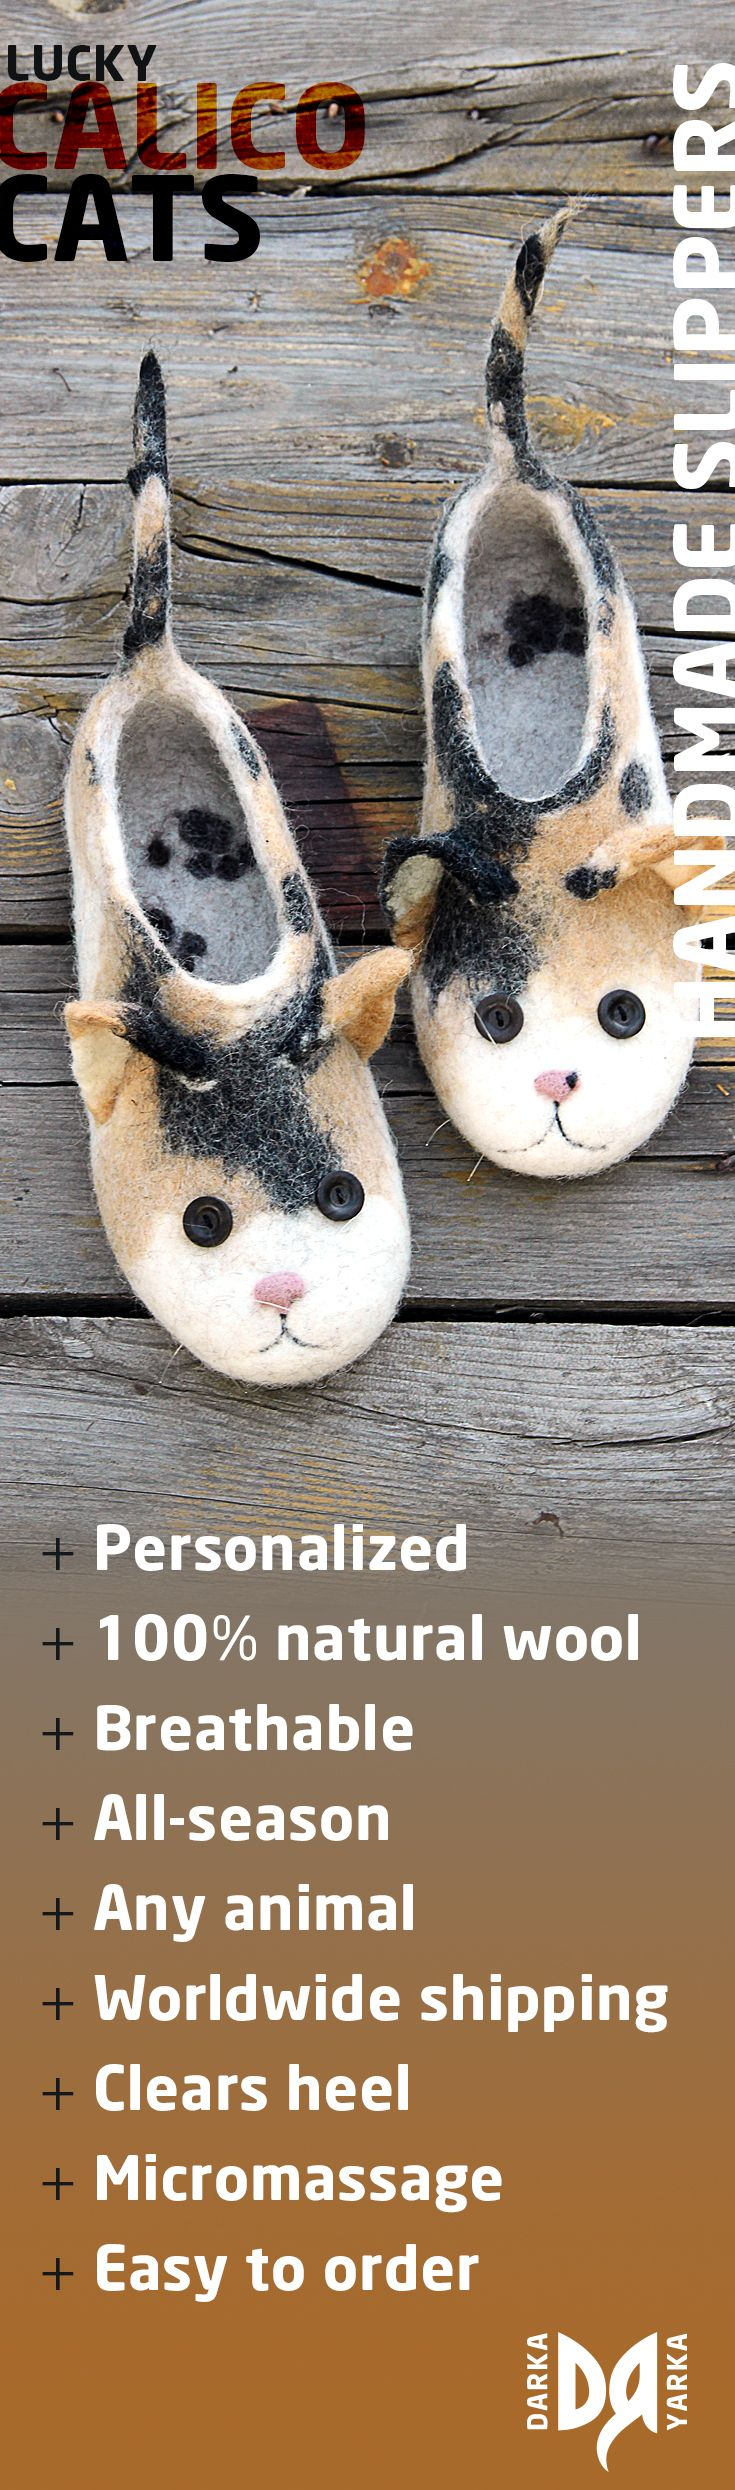 Calico cats slippers, tortoiseshell, tricolor, toys, animals